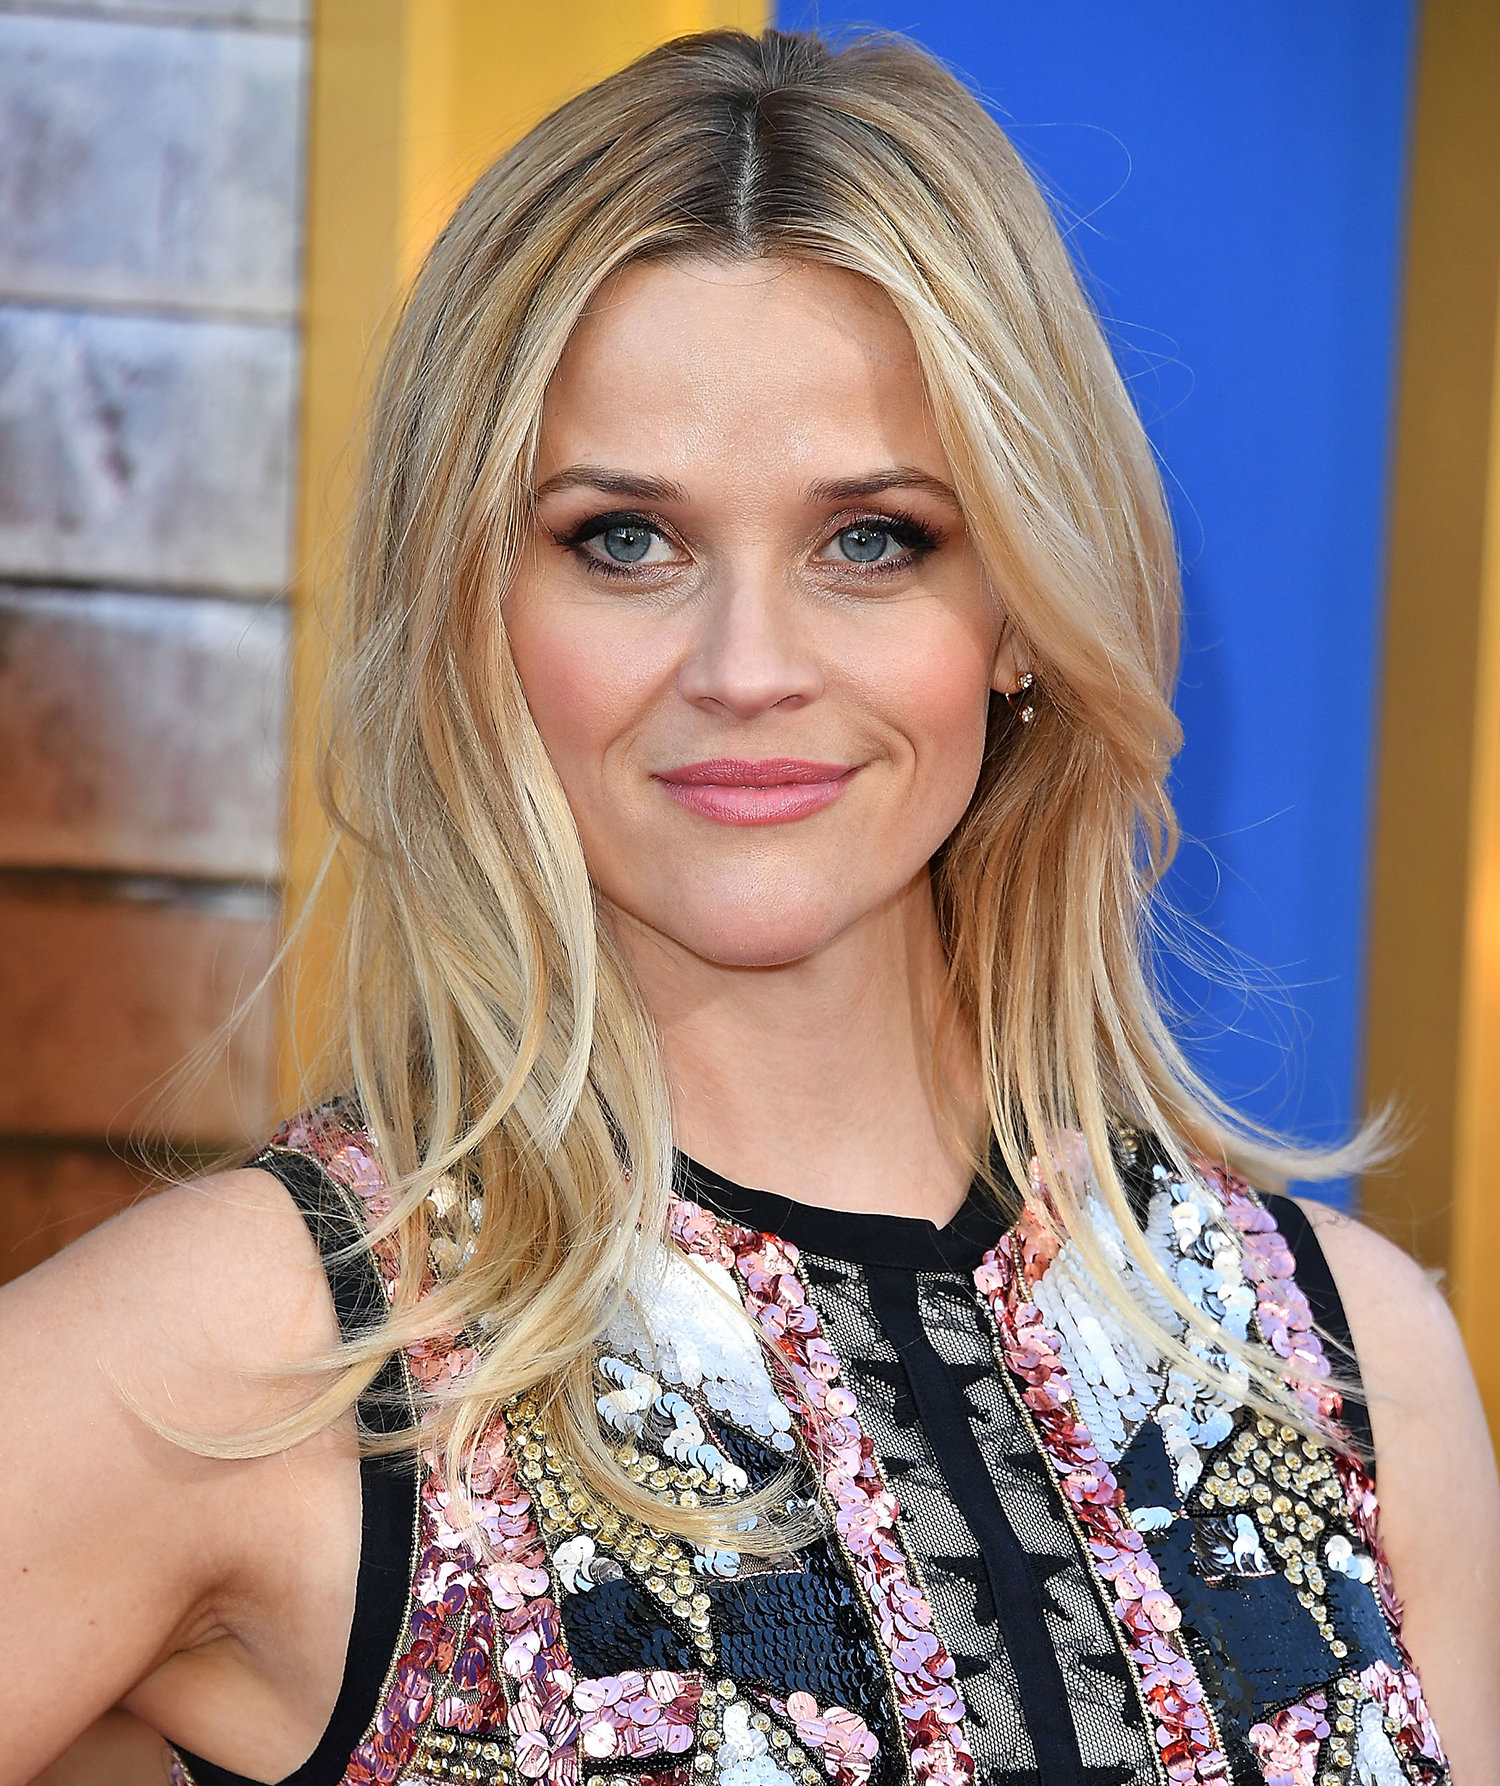 The Book Reese Witherspoon Recommends for Holiday Gift-Giving